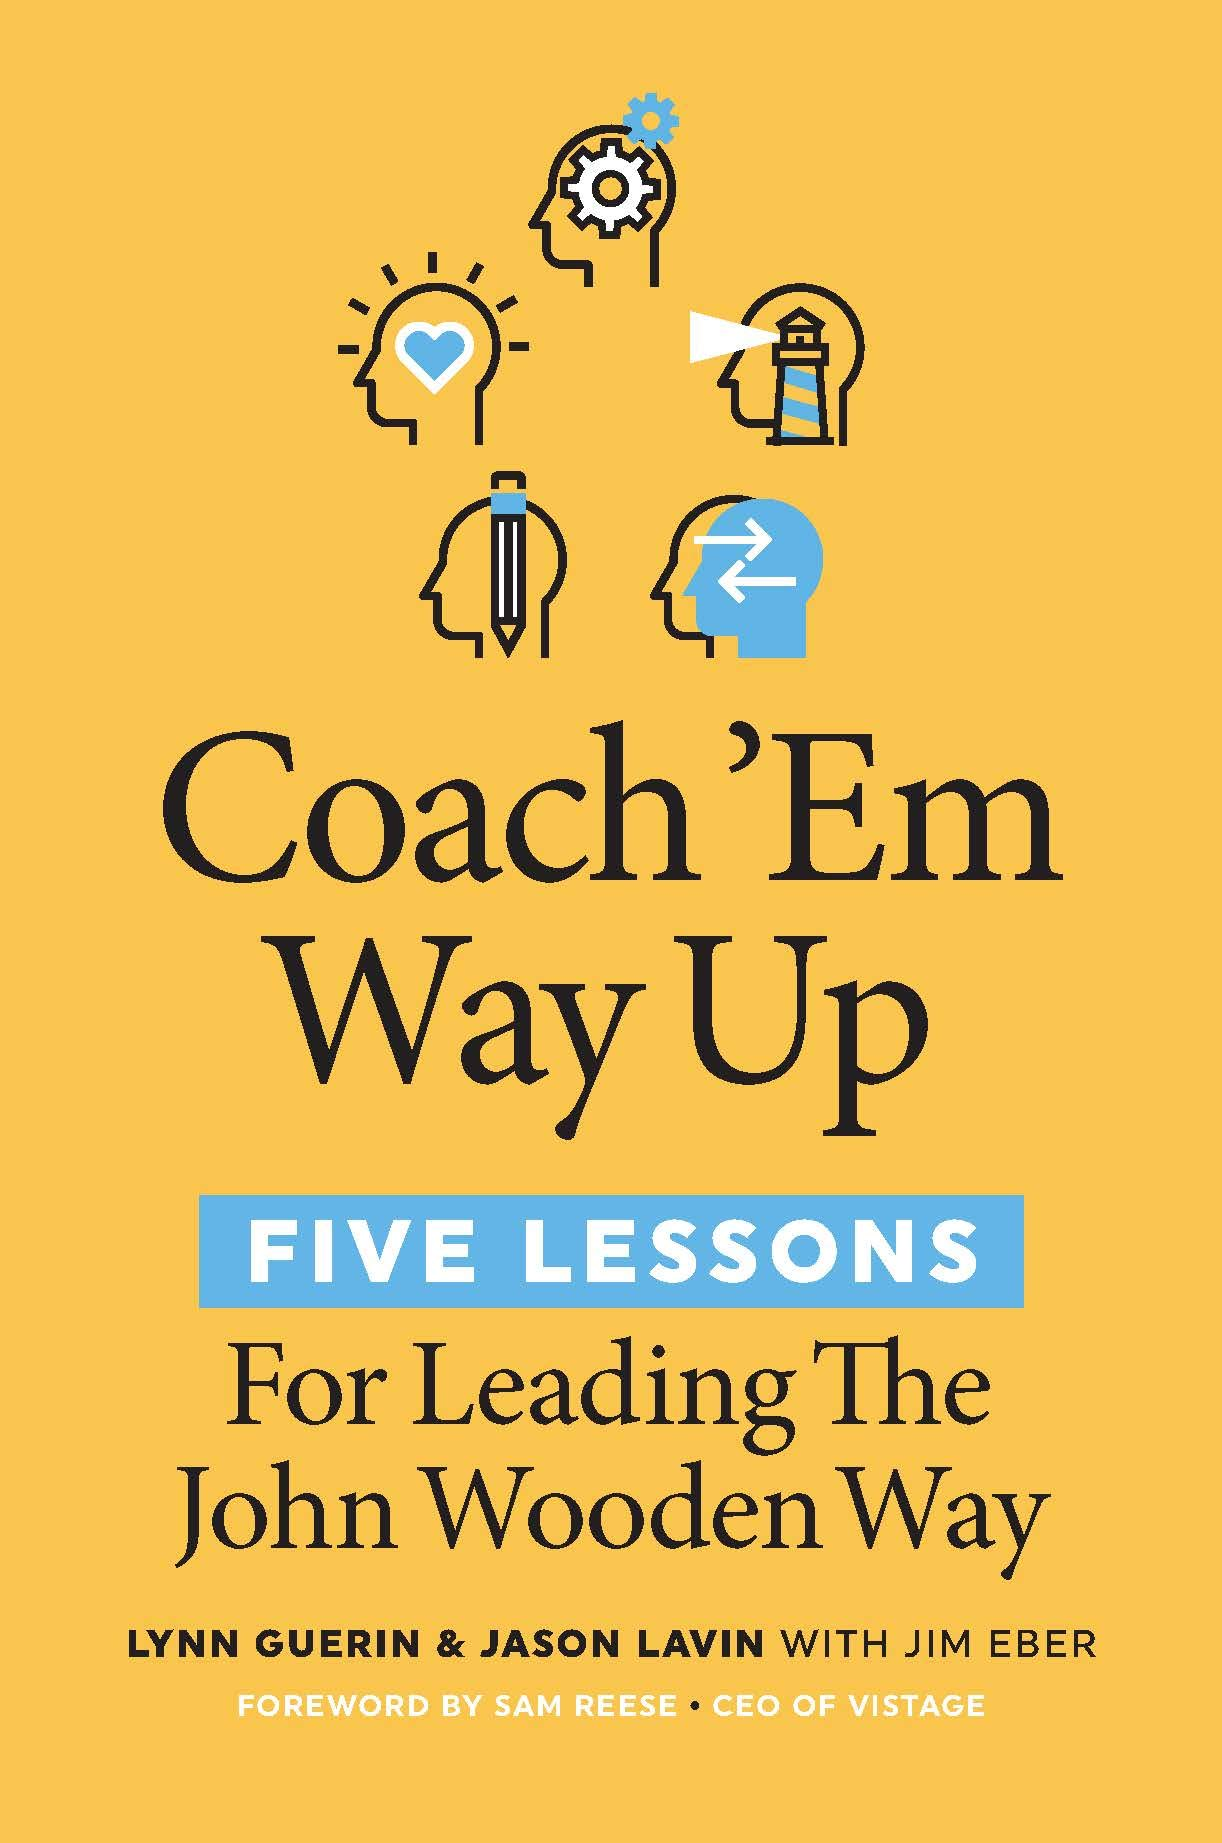 Coach 'Em Way Up: 5 Lessons for Leading the John Wooden Way: Guerin, Lynn, Lavin, Jason, Eber, Jim: 9781642011210: Amazon.com: Books: Executive Coaching-Lynn Guerin - Leadership Lessons from Coach Wooden - A New Direction Jay Izso